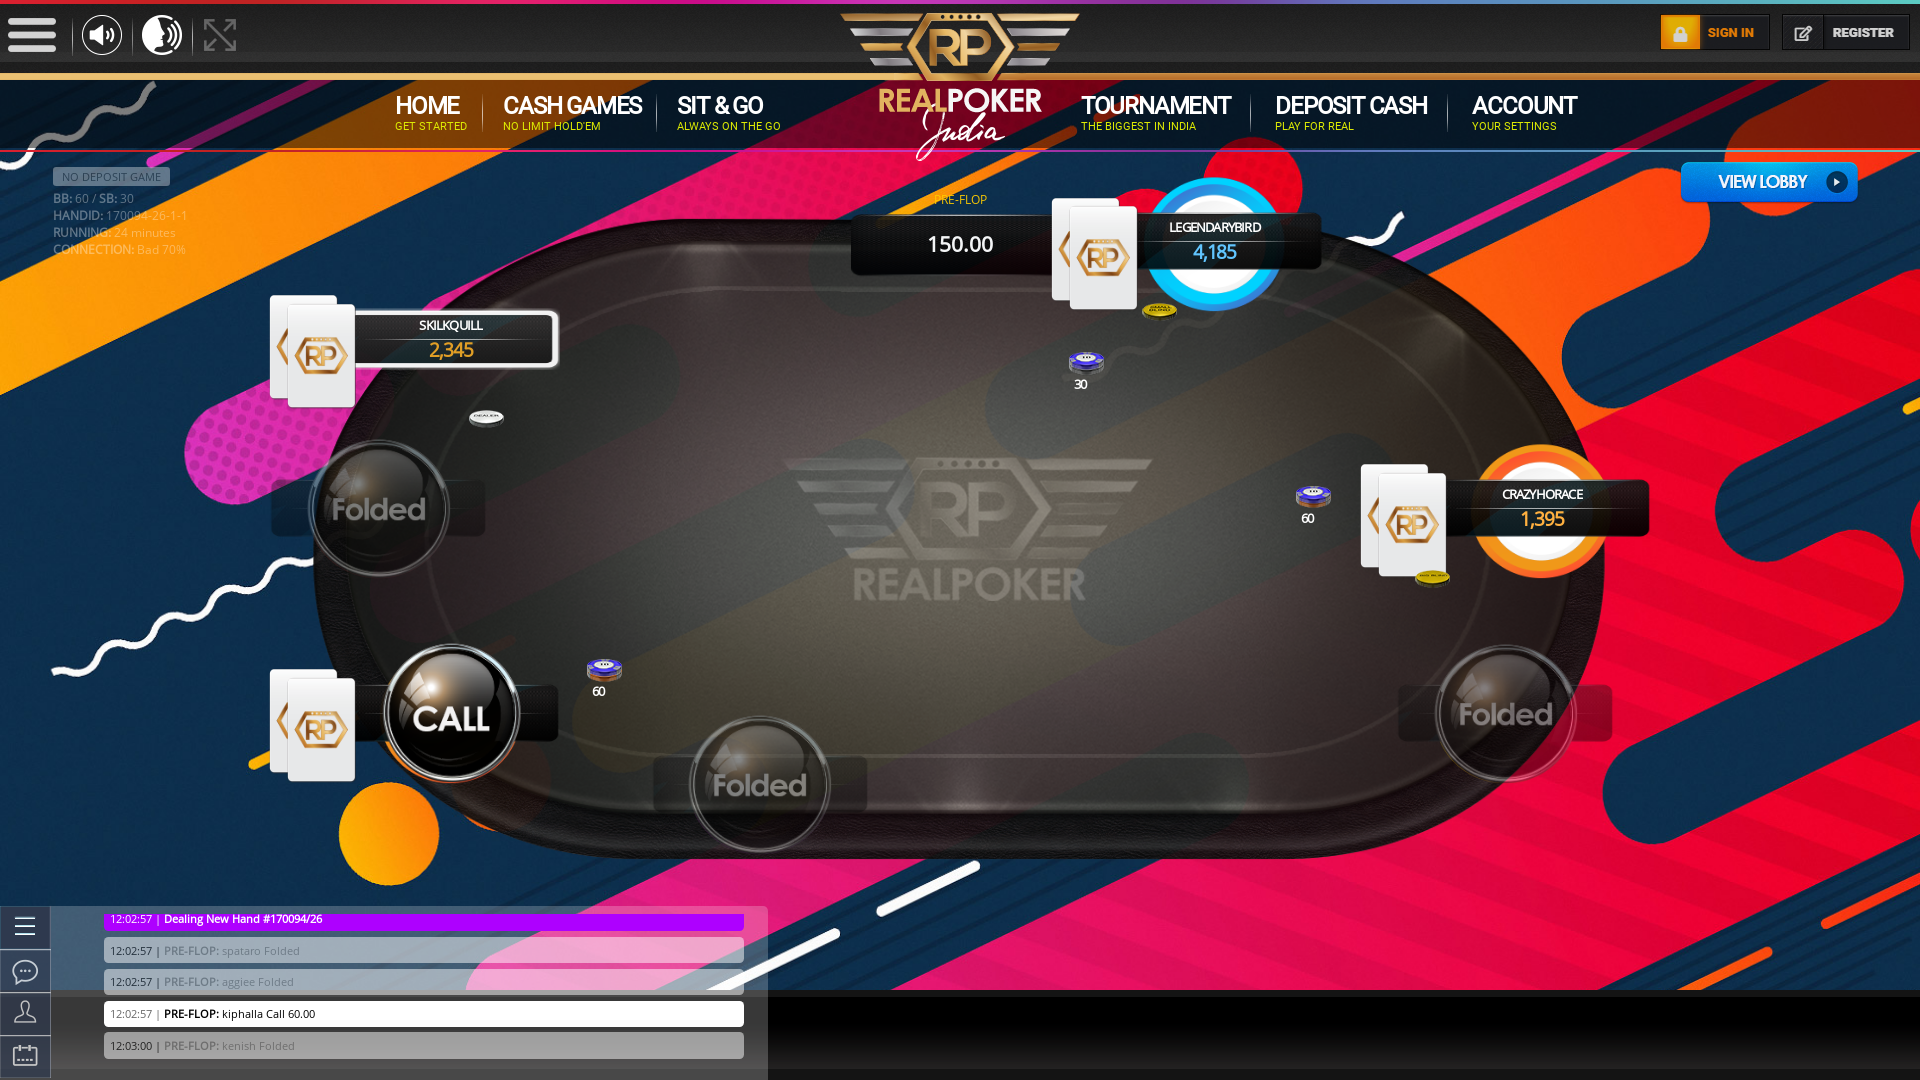 Online poker on a 10 player table in the 24th minute match up